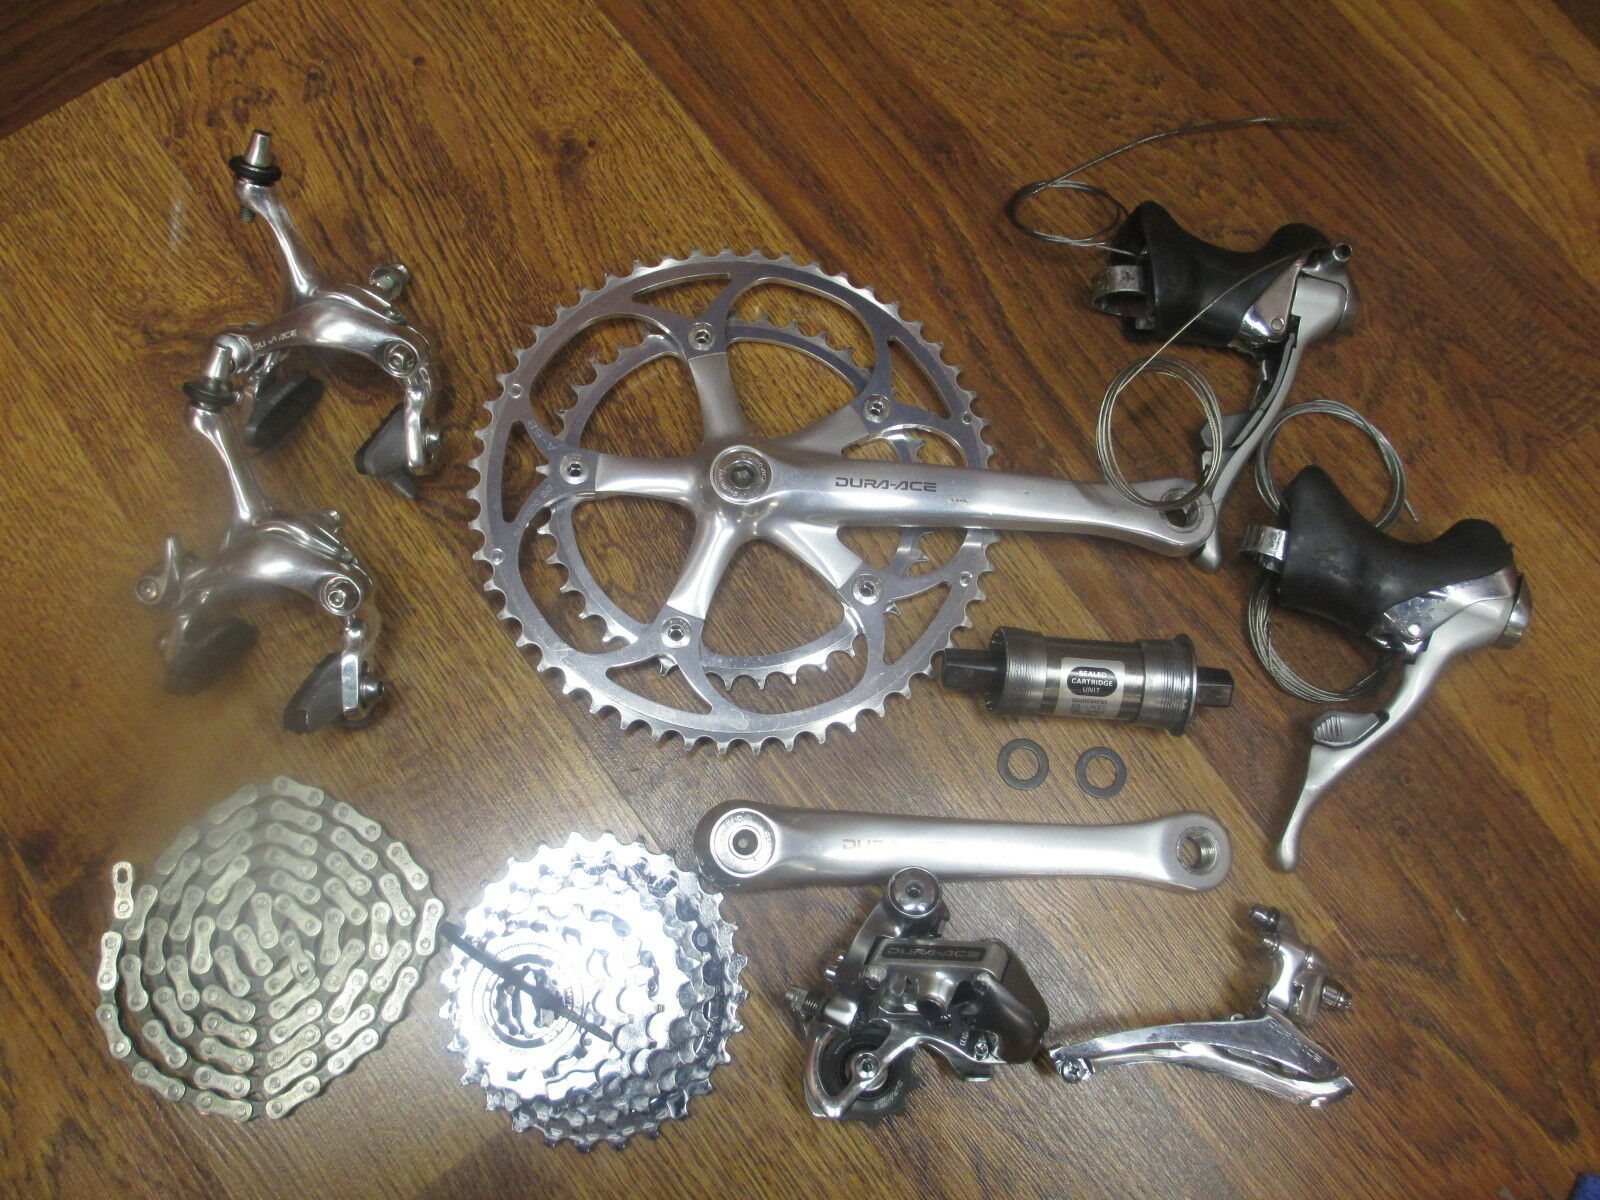 VINTAGE SHIMANO DURA ACE 7410 172.5 52 39  GROUP GRUPPO BUILD KIT 8 SPEED DOUBLE  all in high quality and low price